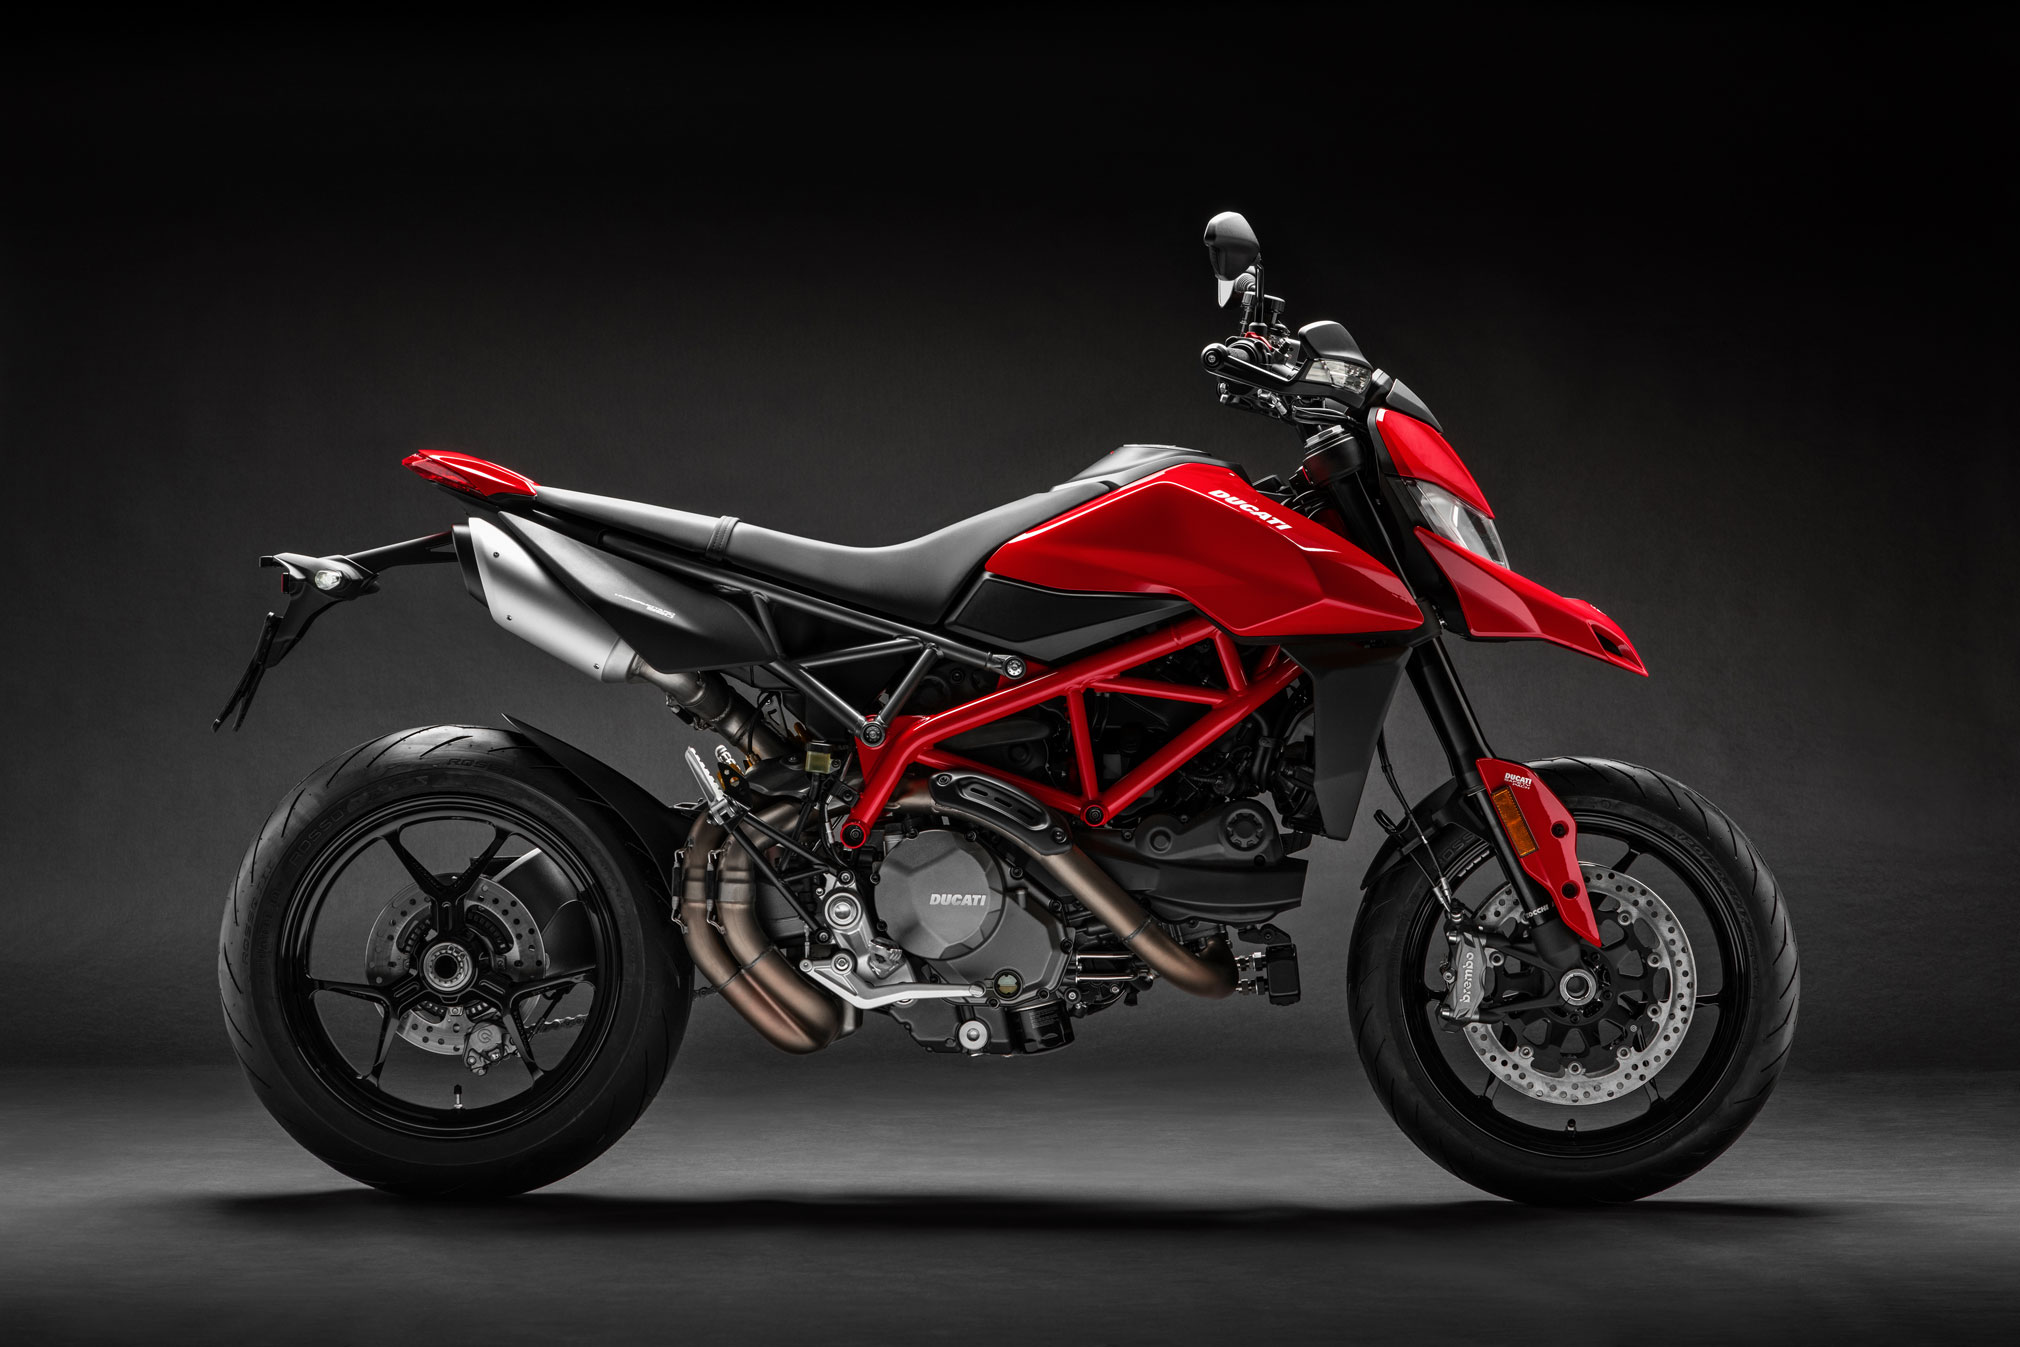 2020 Ducati Hypermotard 950 Guide • Total Motorcycle